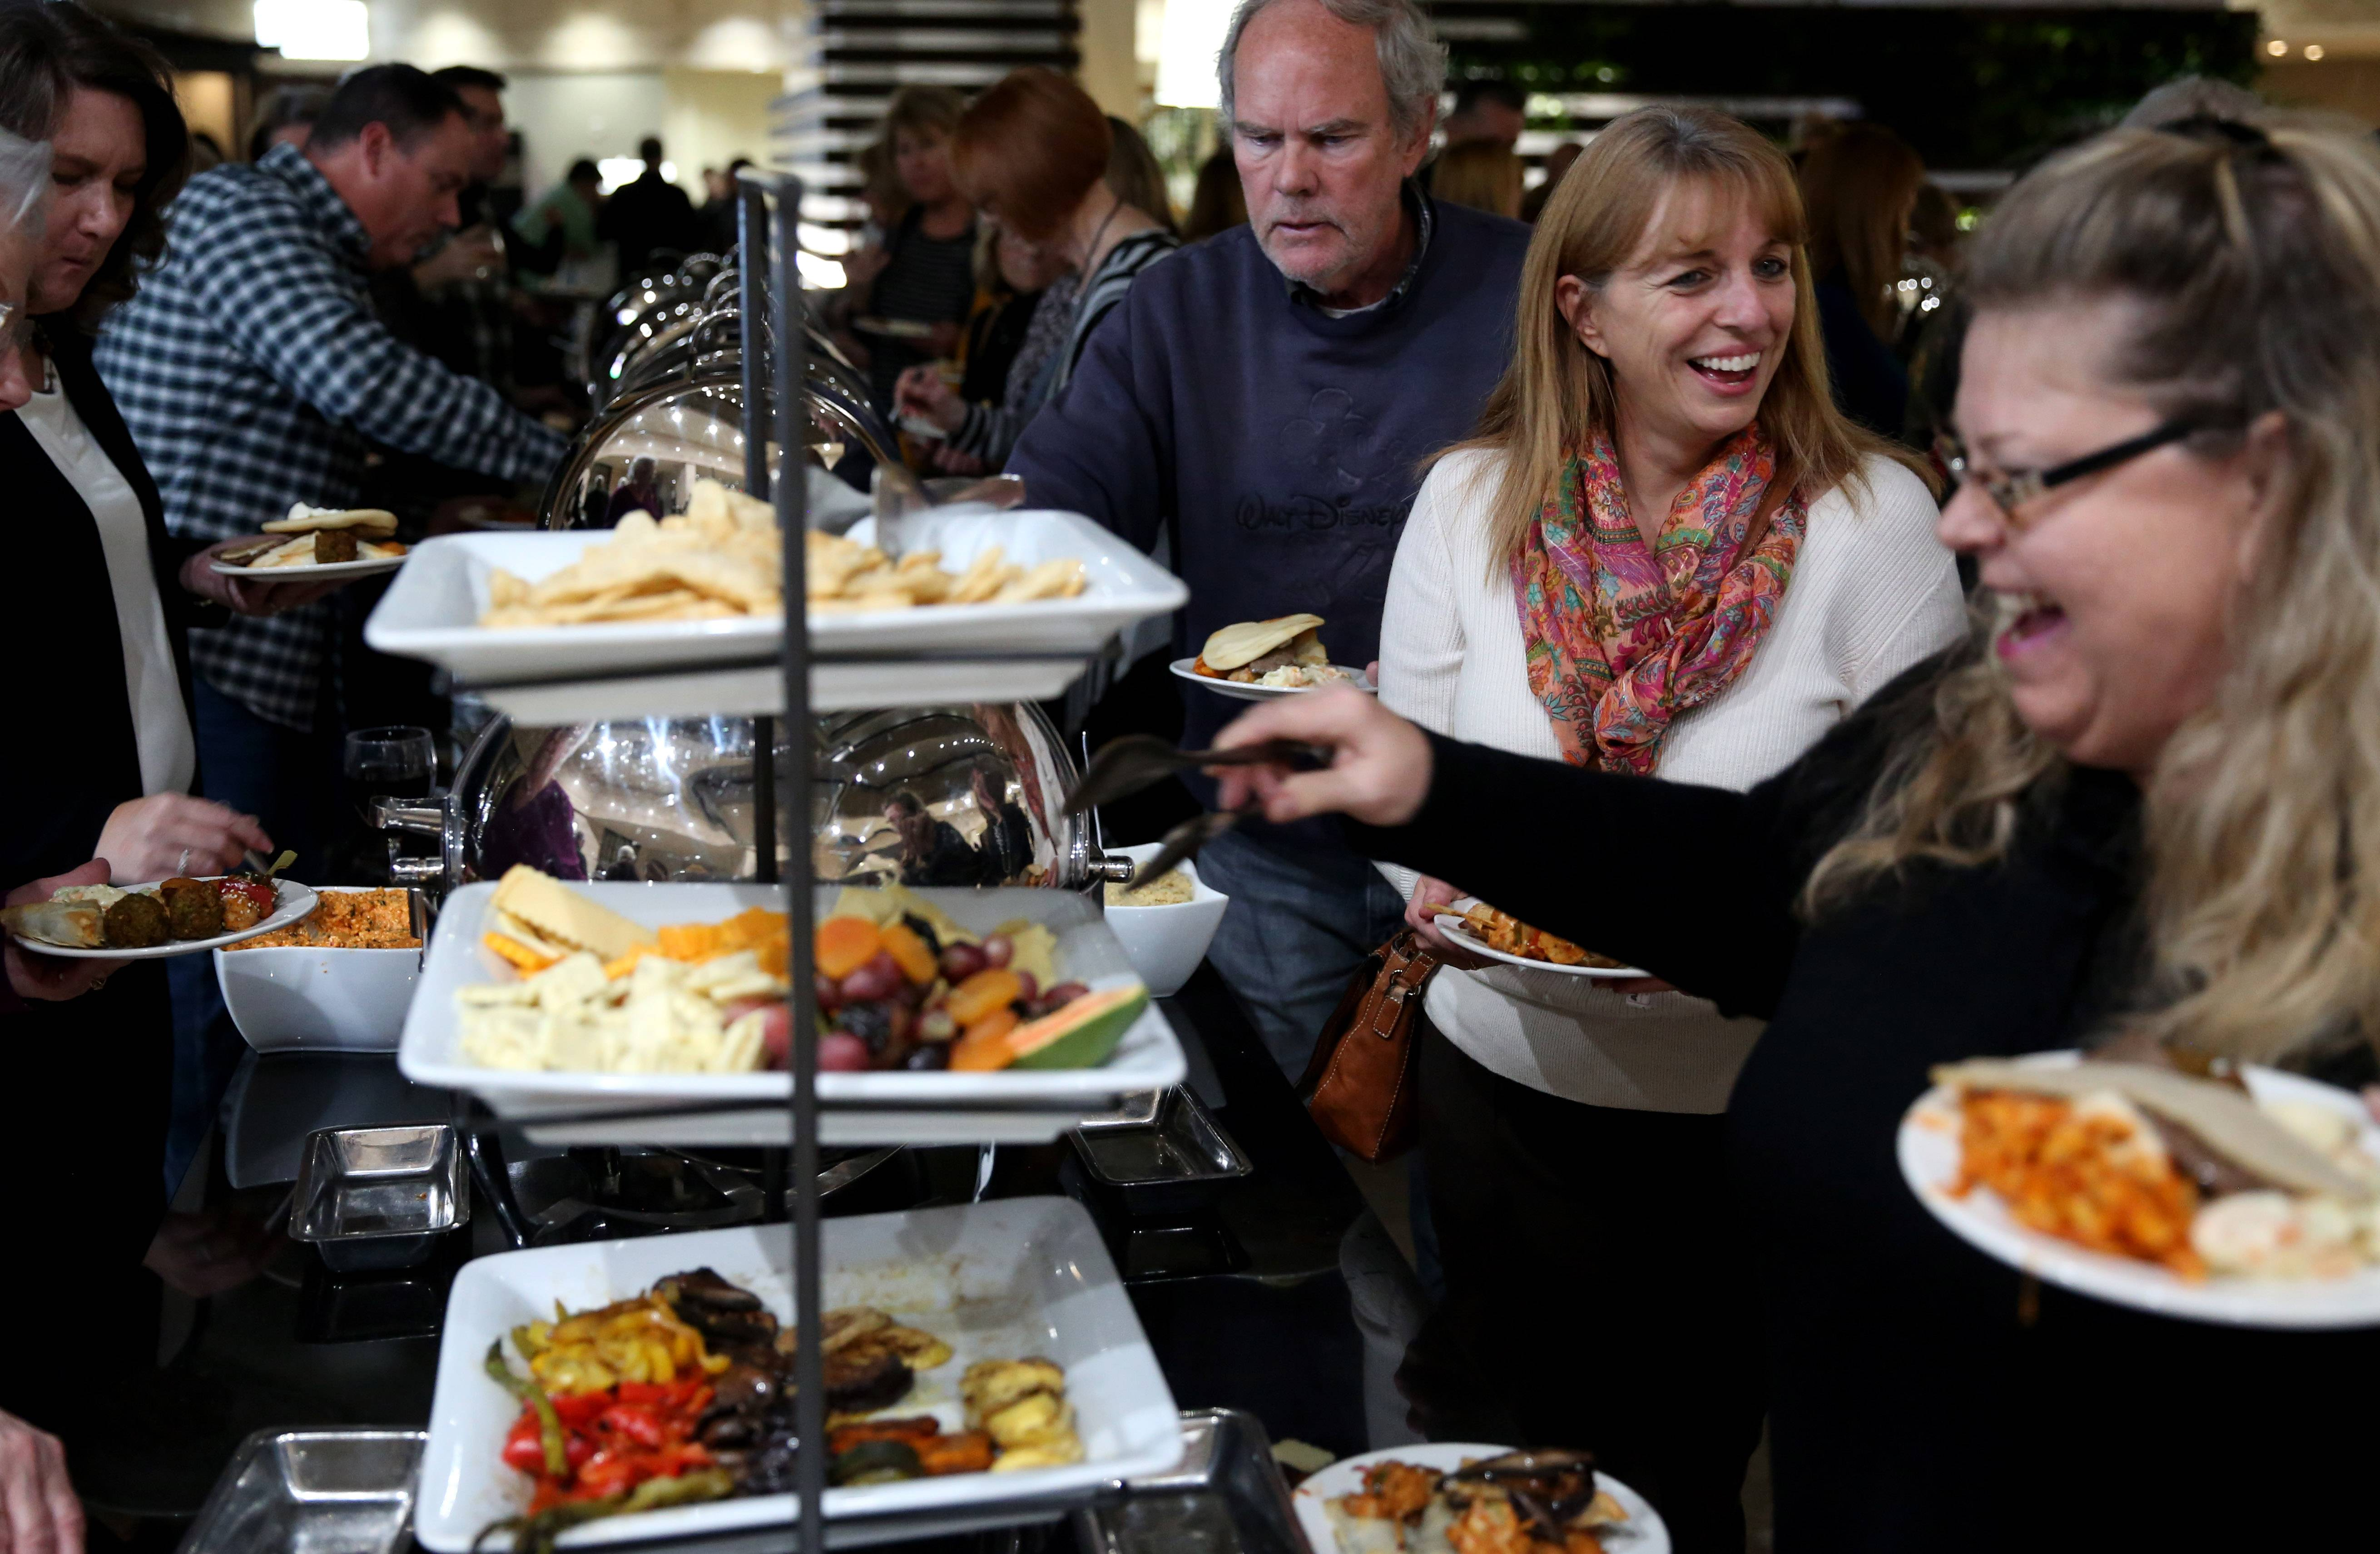 Those attending the  2017 Daily Herald Cook of the Week Challenge finale got to sample from a buffet. Laura Andrew, far right, was celebrating her birthday by attending the event to watch the final four cooks compete.